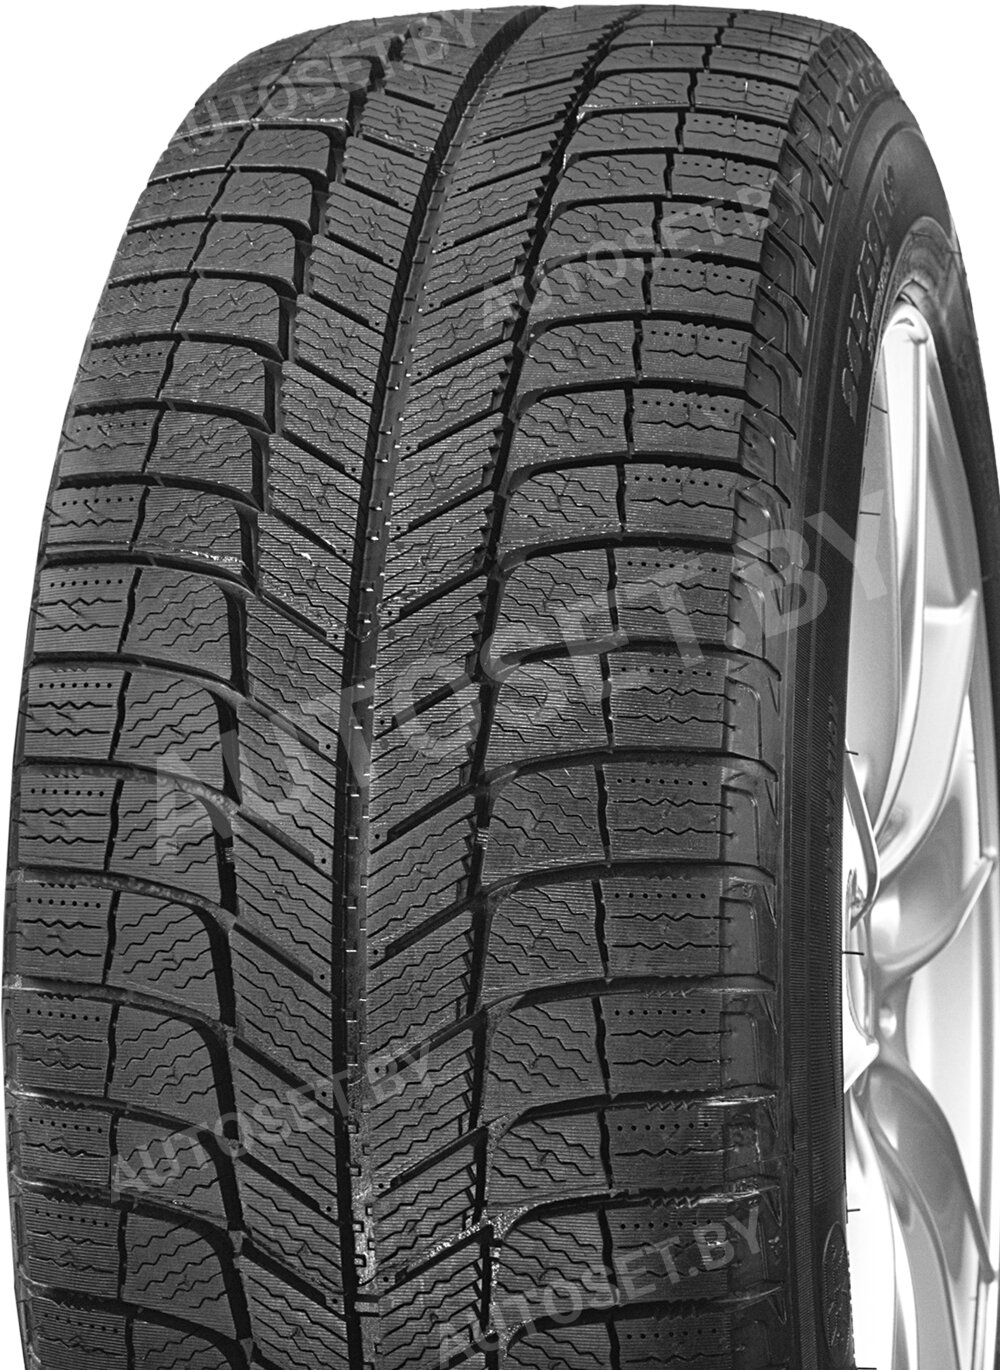 Зимняя шина MICHELIN X-Ice 3 – вид 2